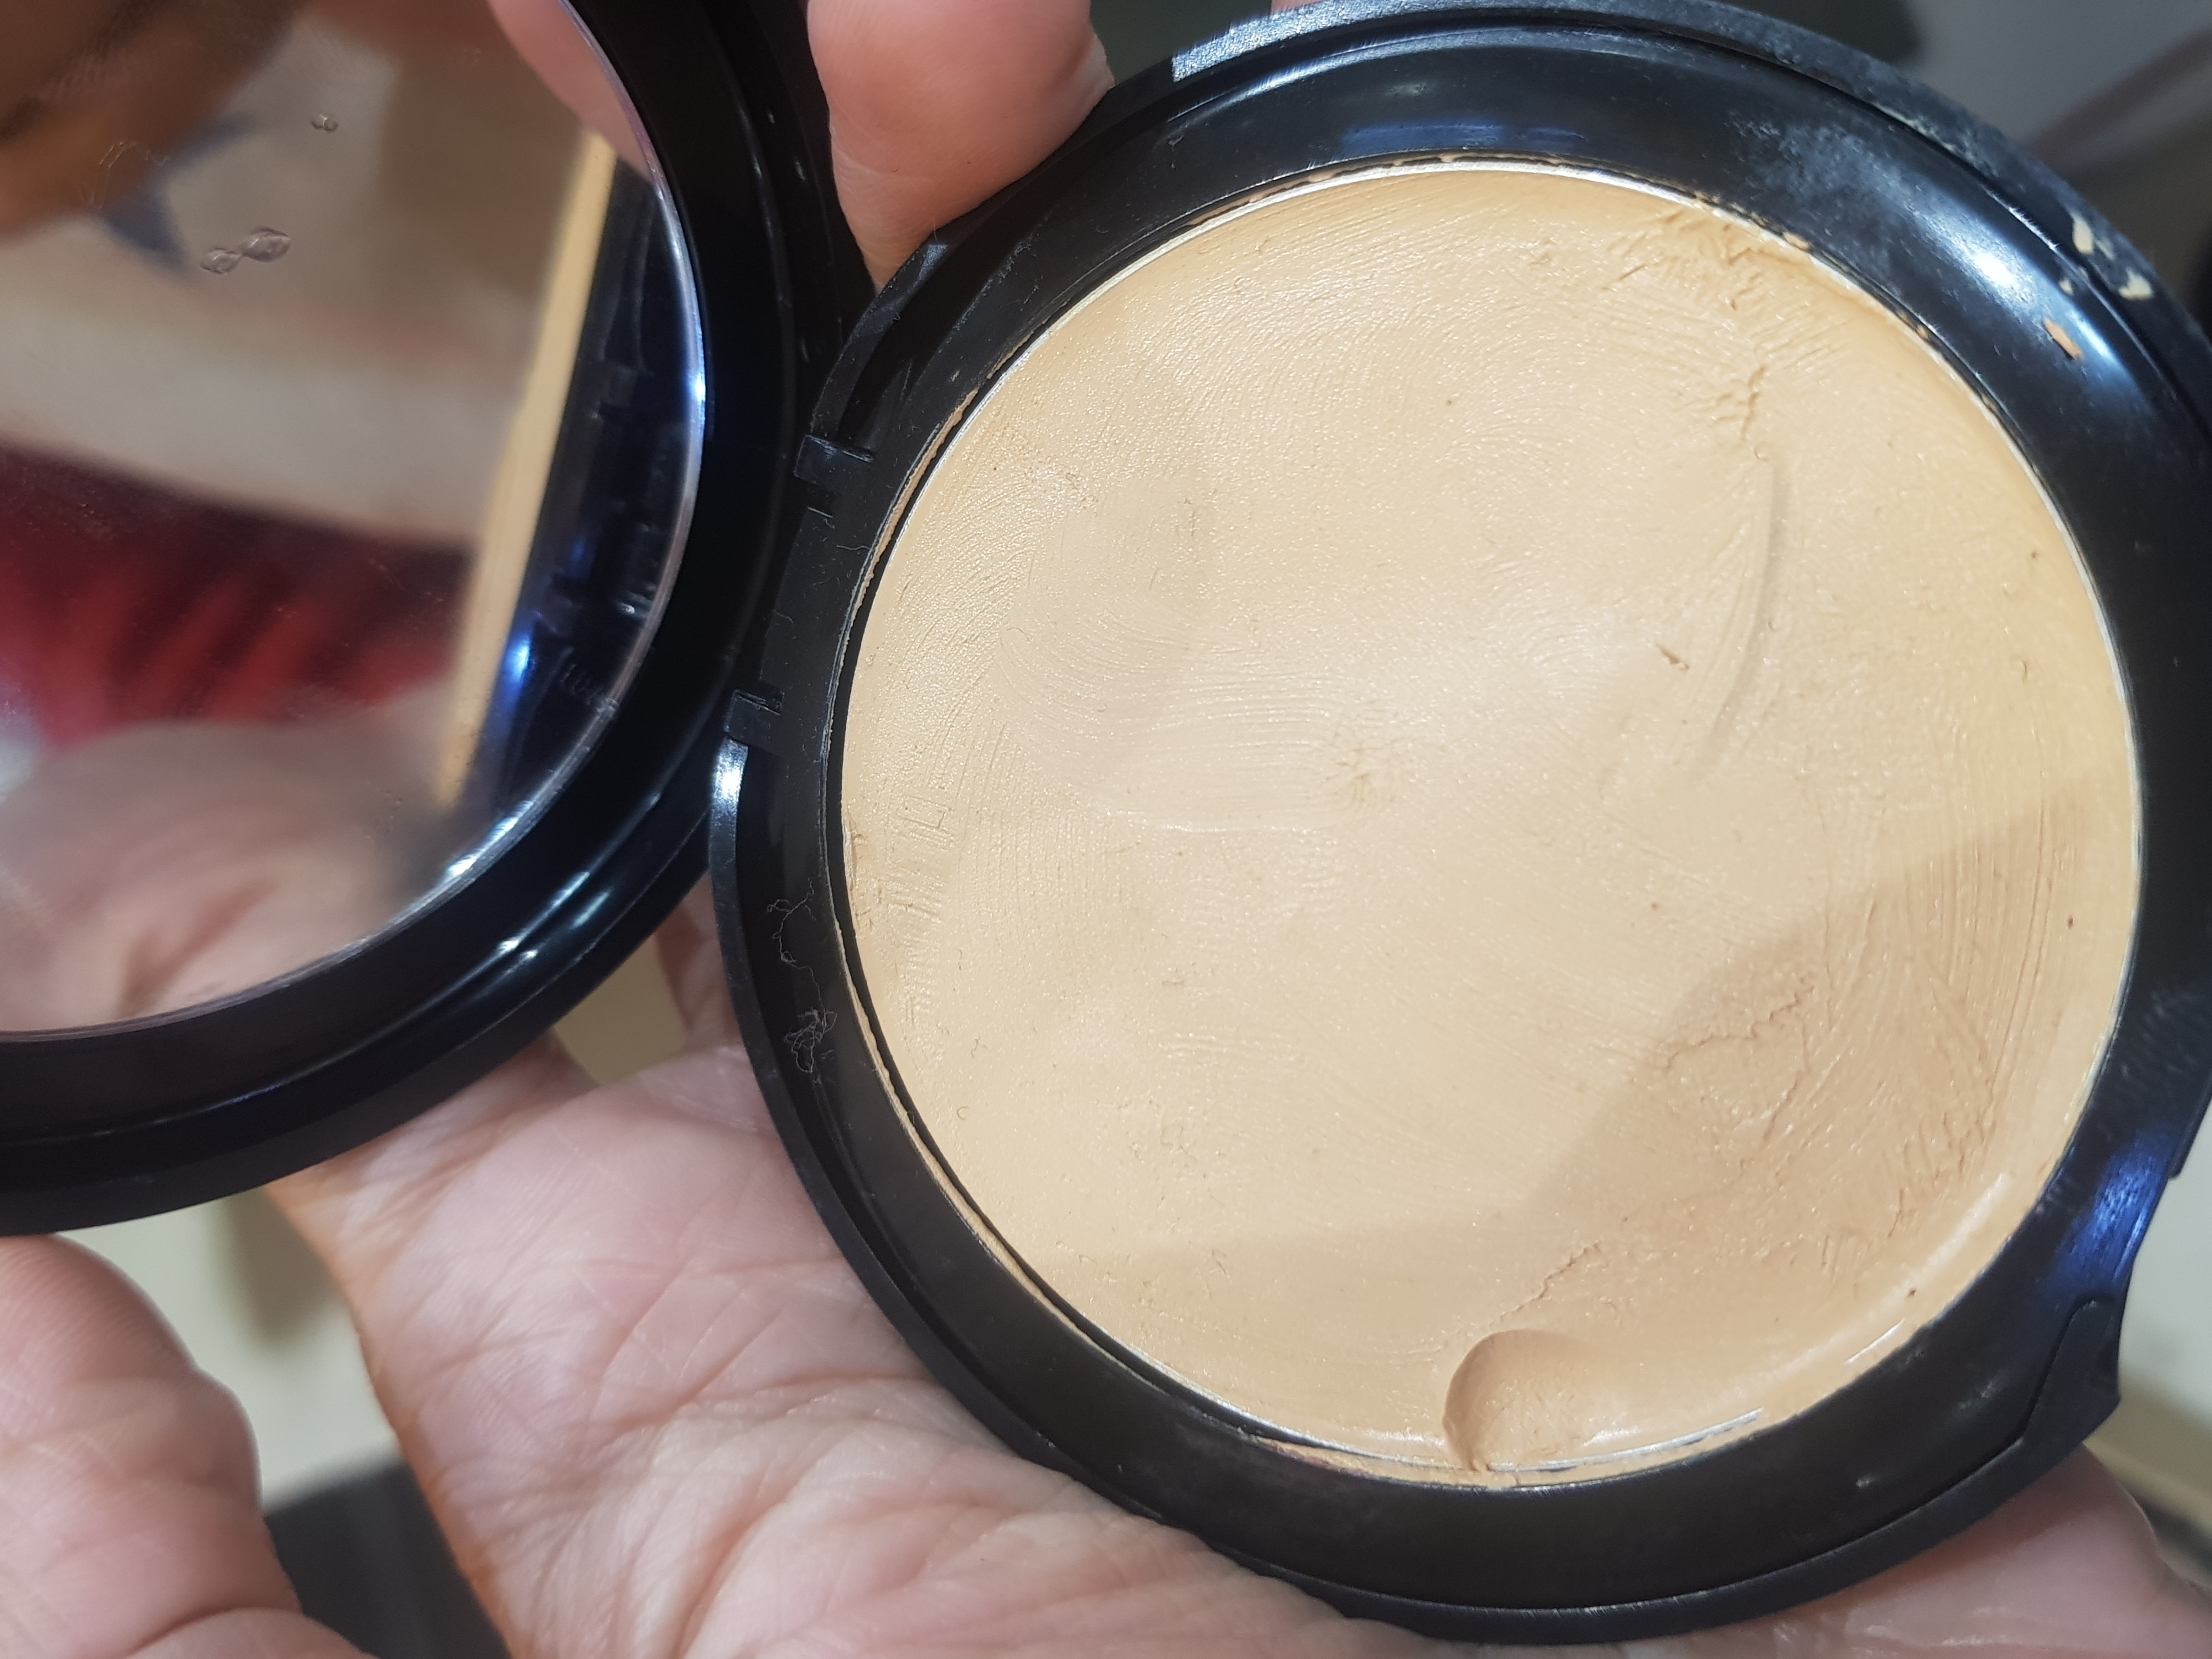 Lakme Absolute White Intense Wet & Dry Compact-3 in 1 compact!-By poonam_kakkar